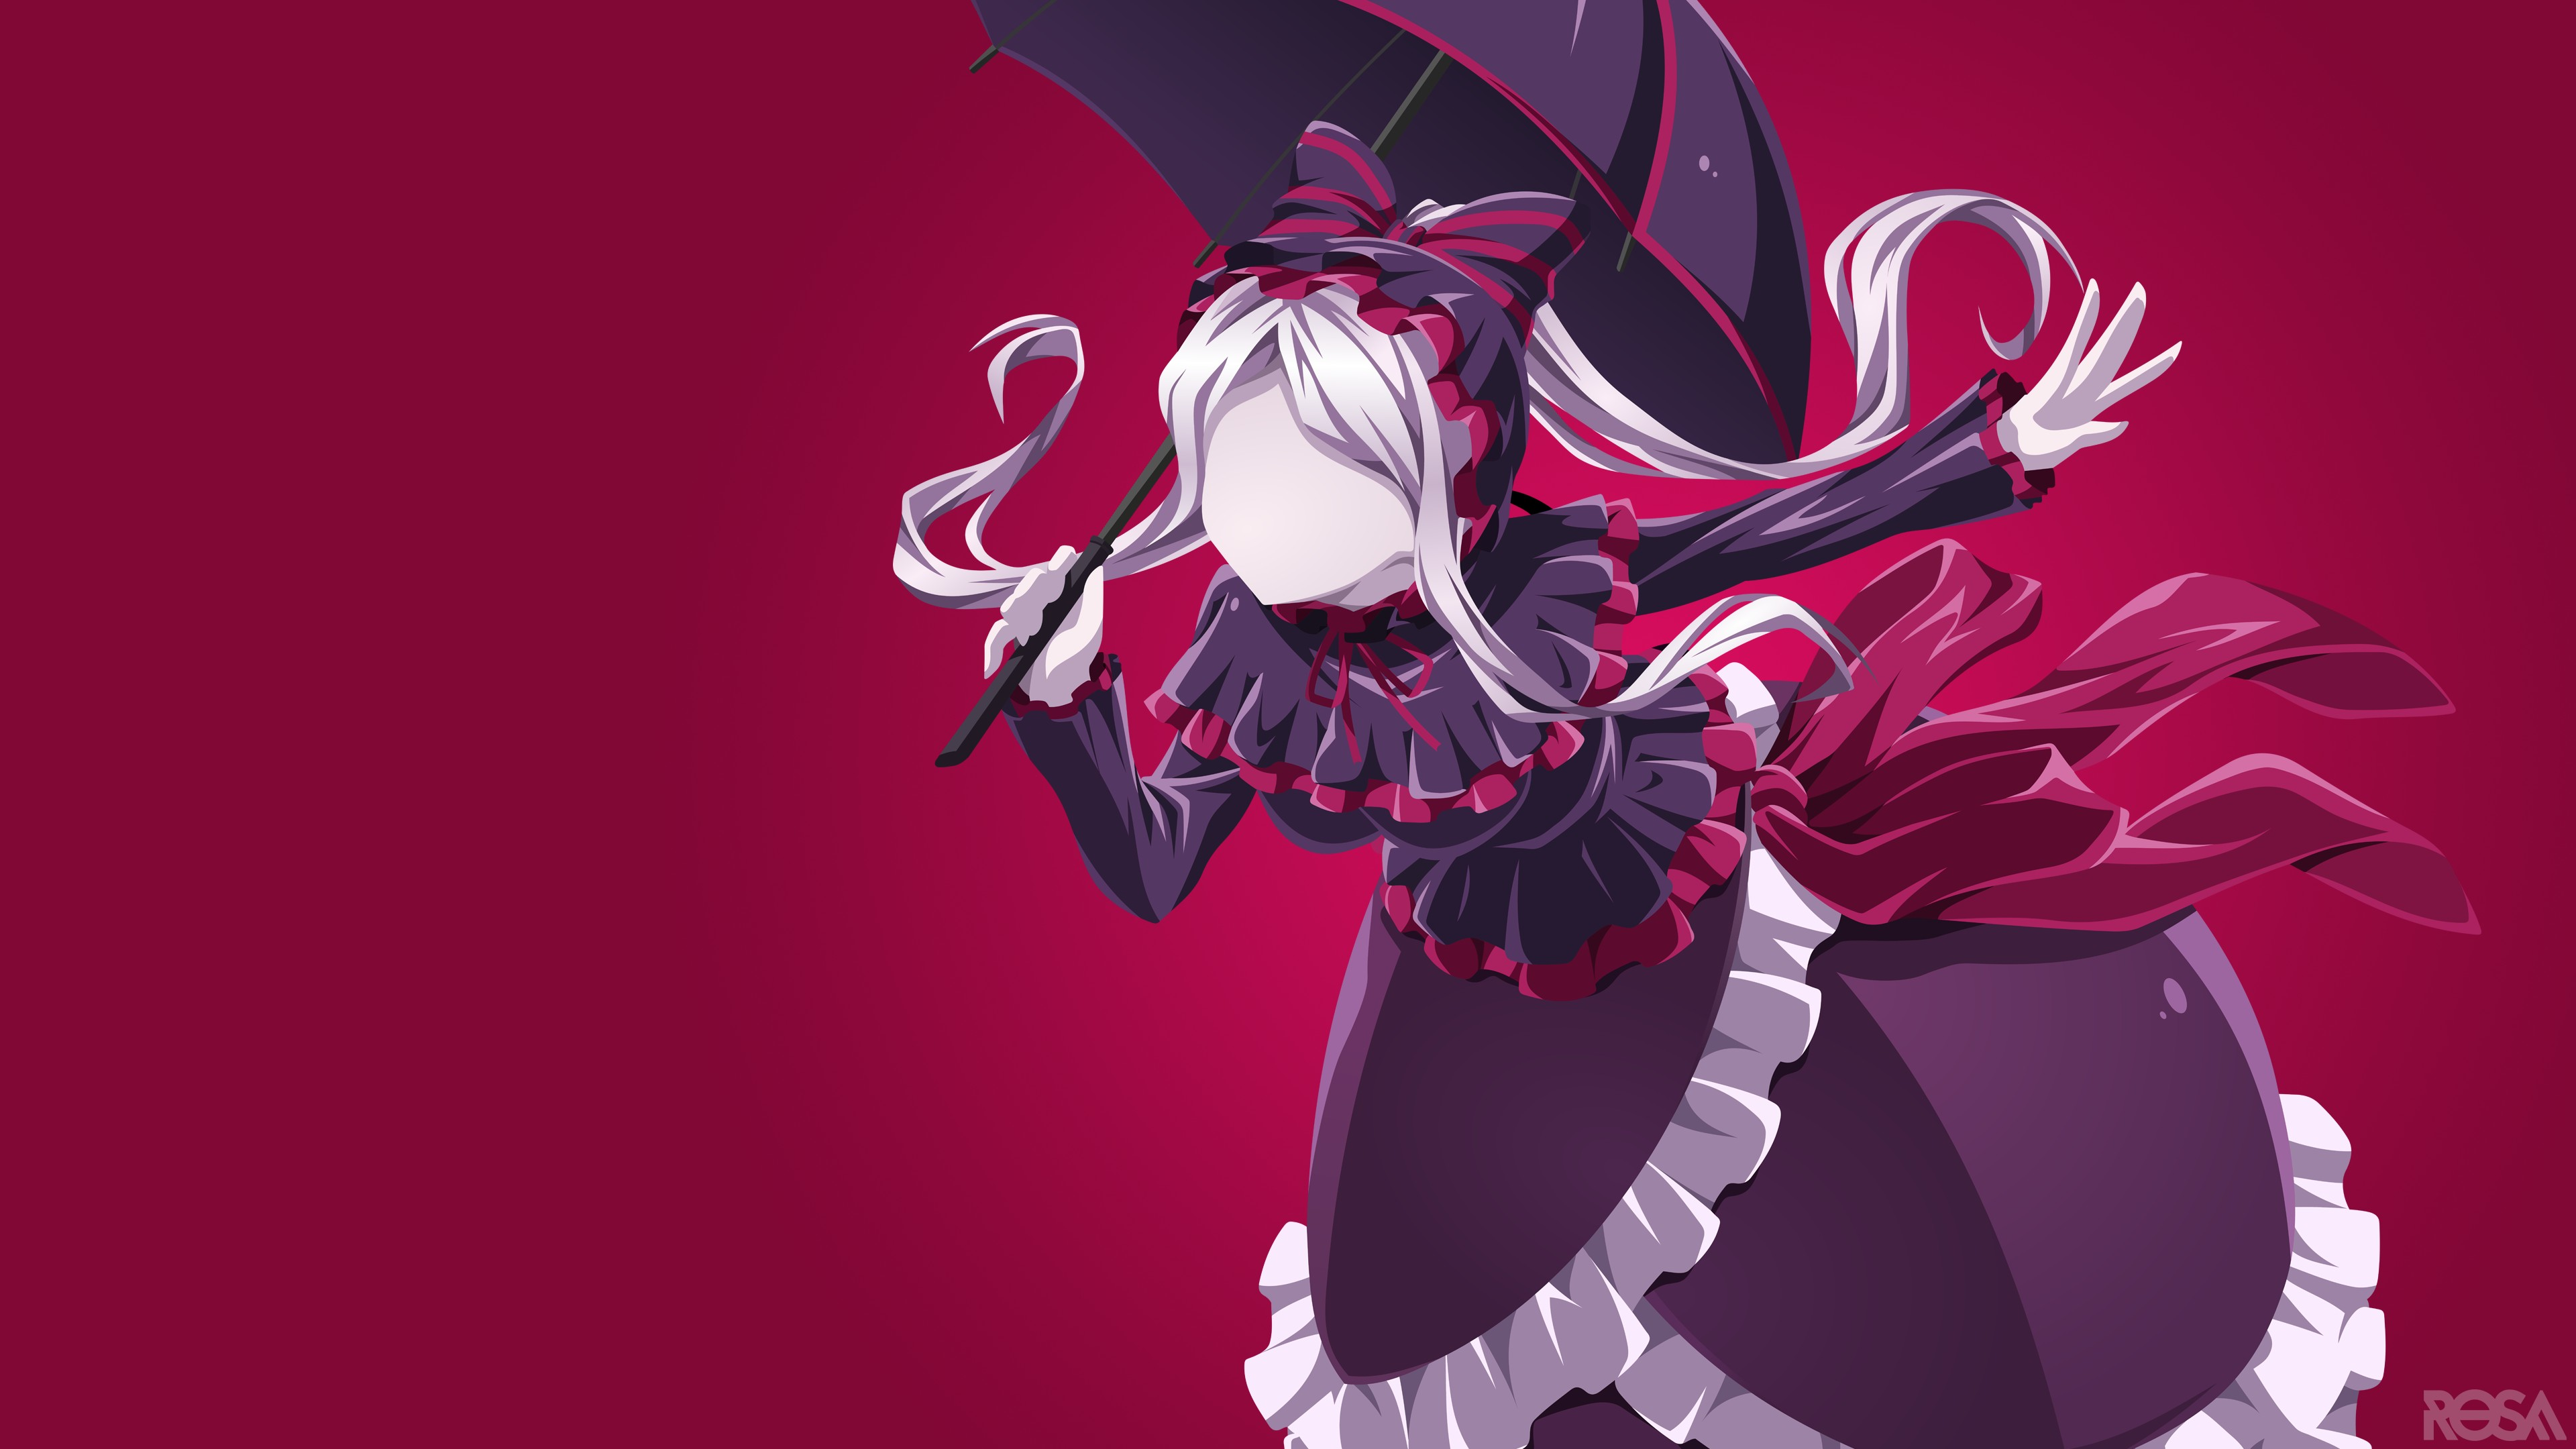 Anime Girls Overlord Anime Shalltear Bloodfallen Hd Wallpapers Desktop And Mobile Images Photos